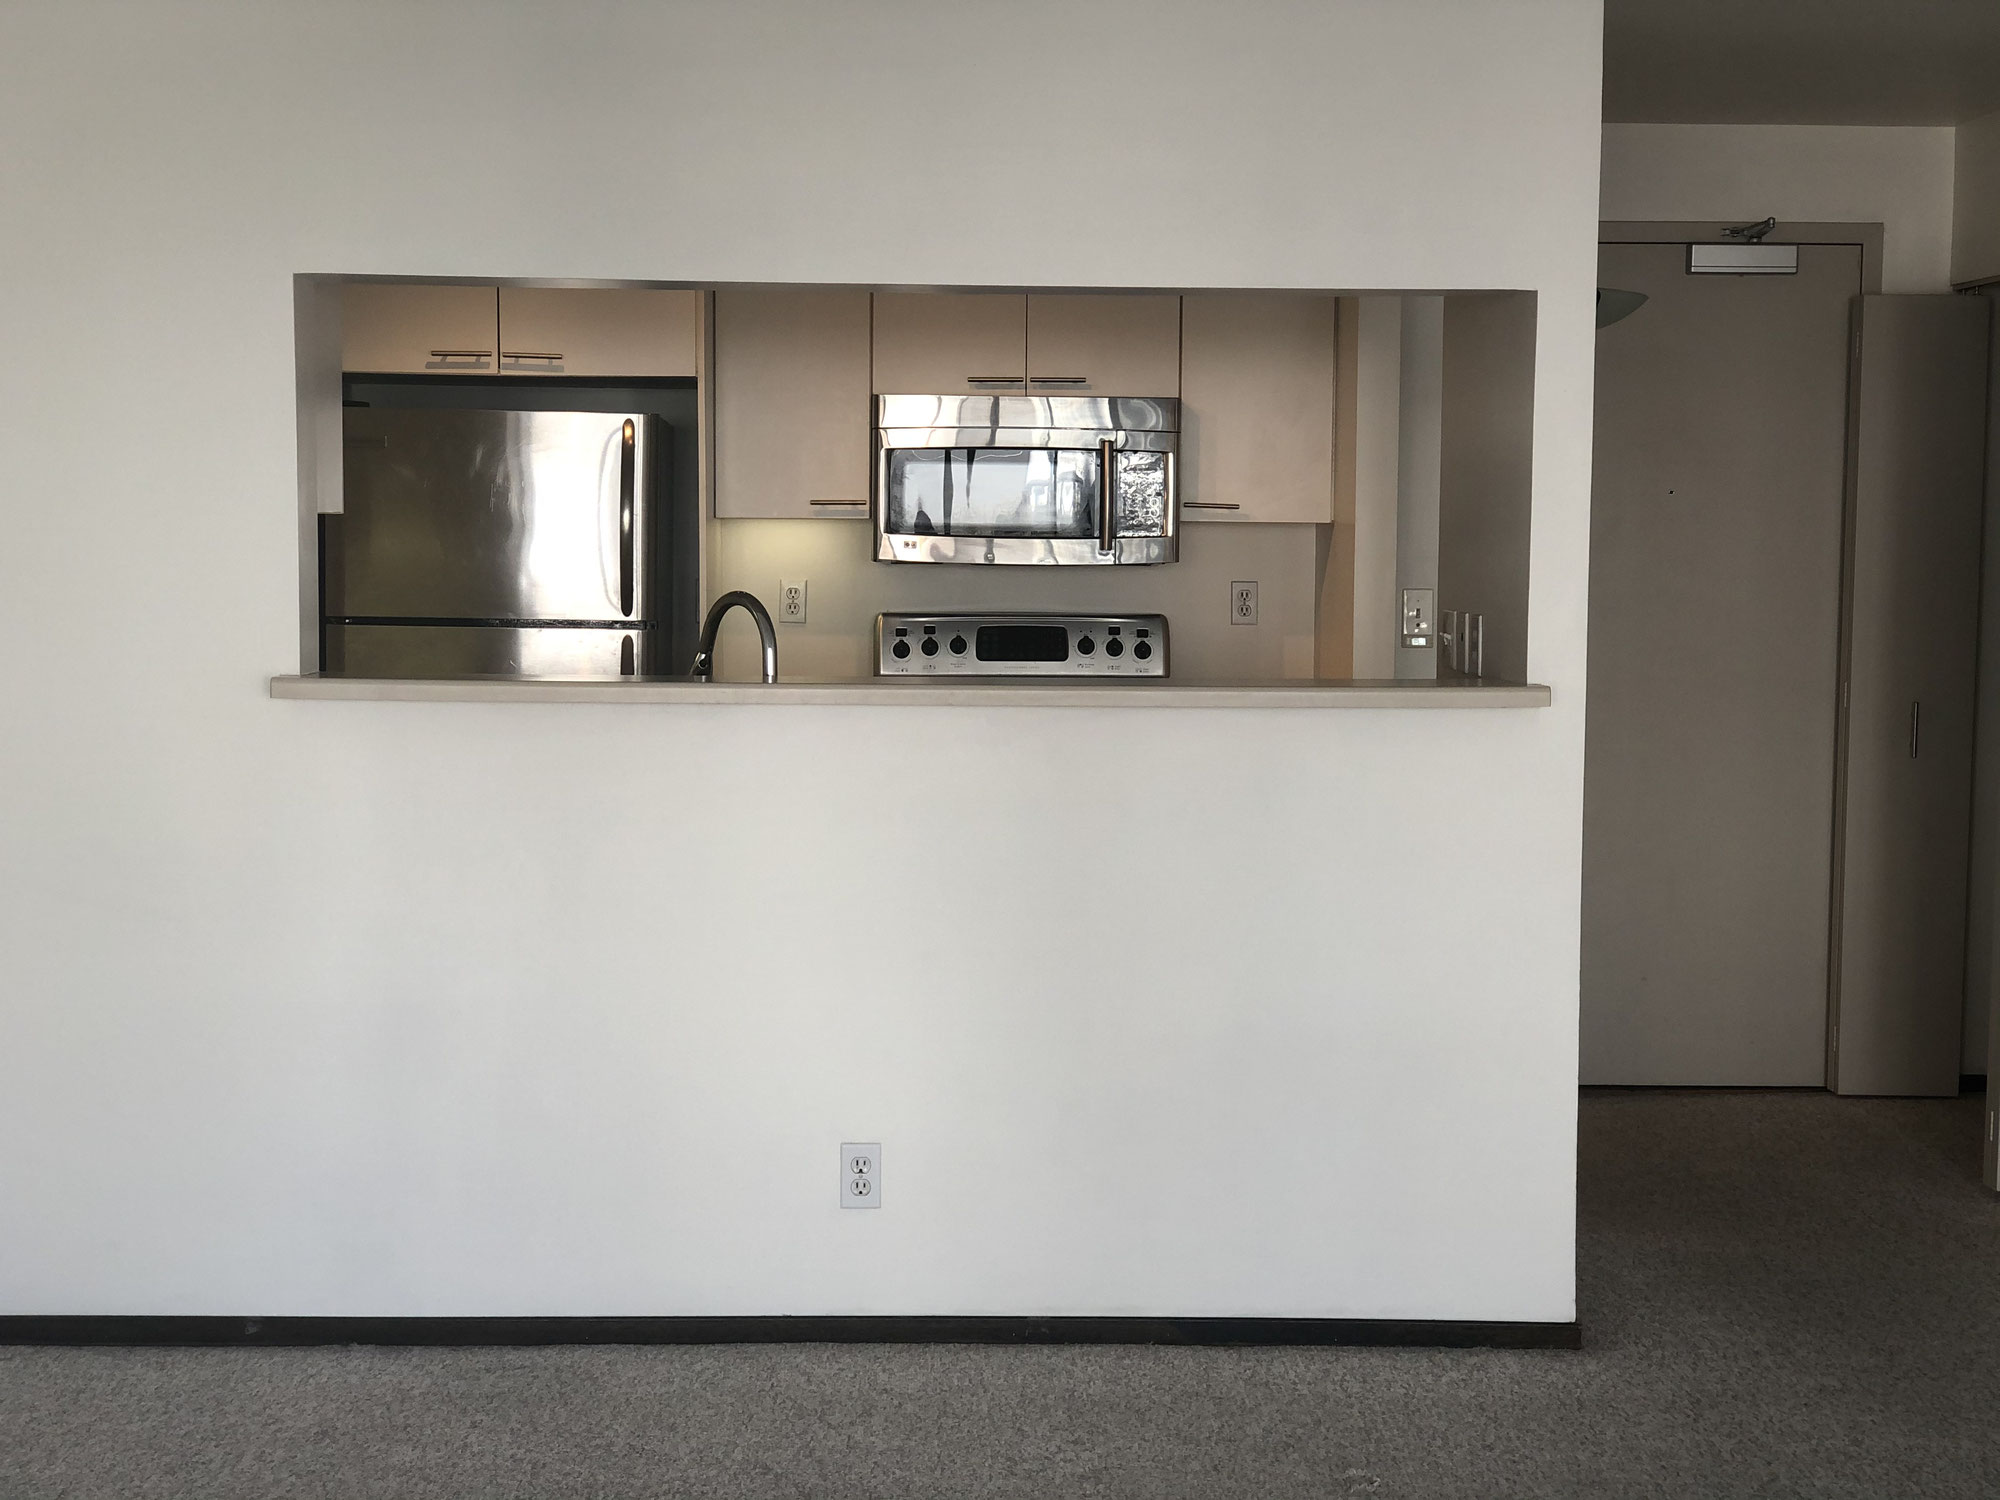 300 3rd St  Leased